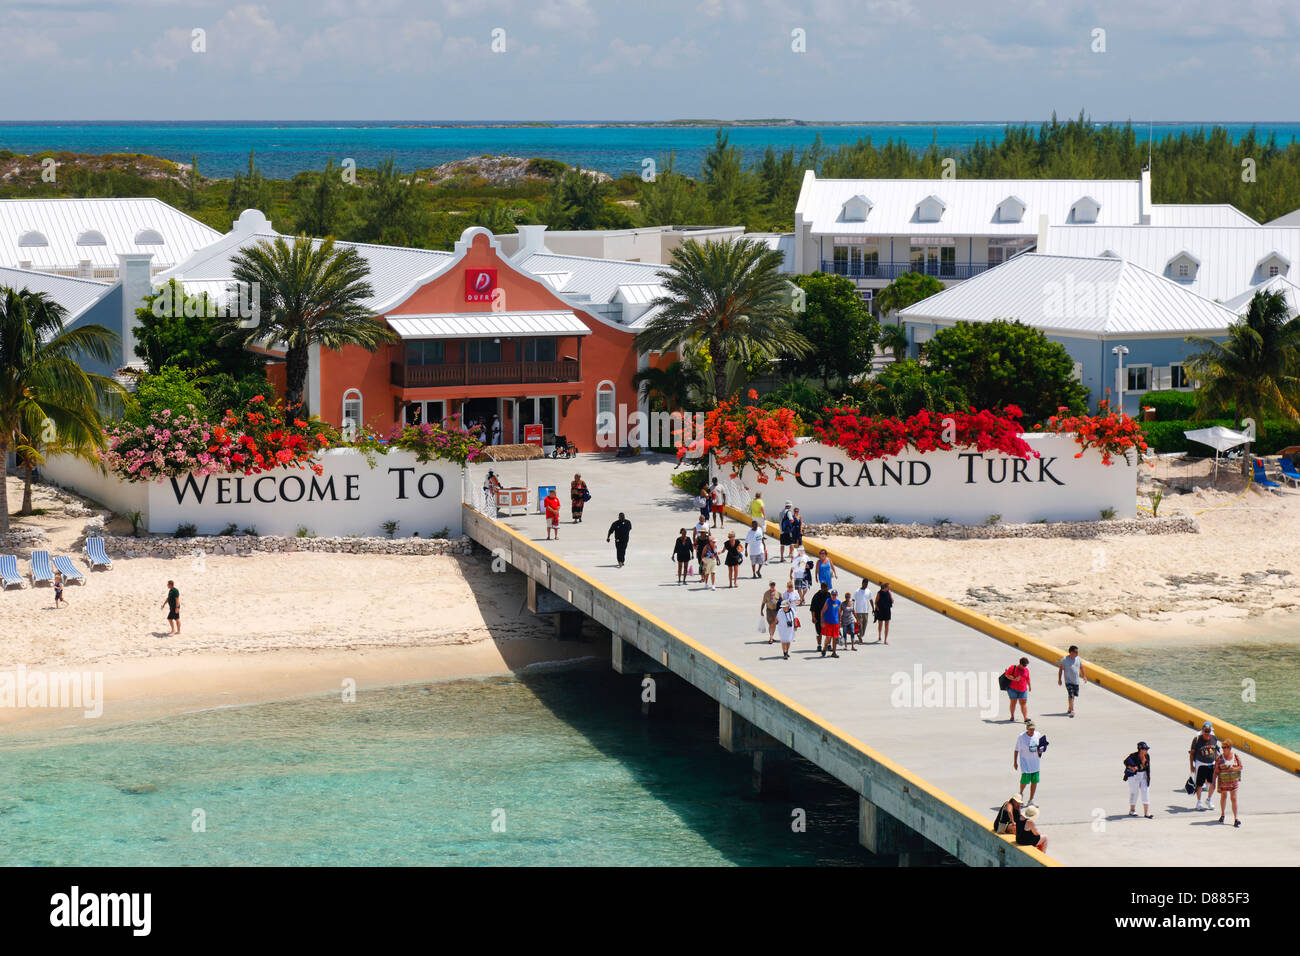 Grand Turk Turks and Caicos islands. - Stock Image